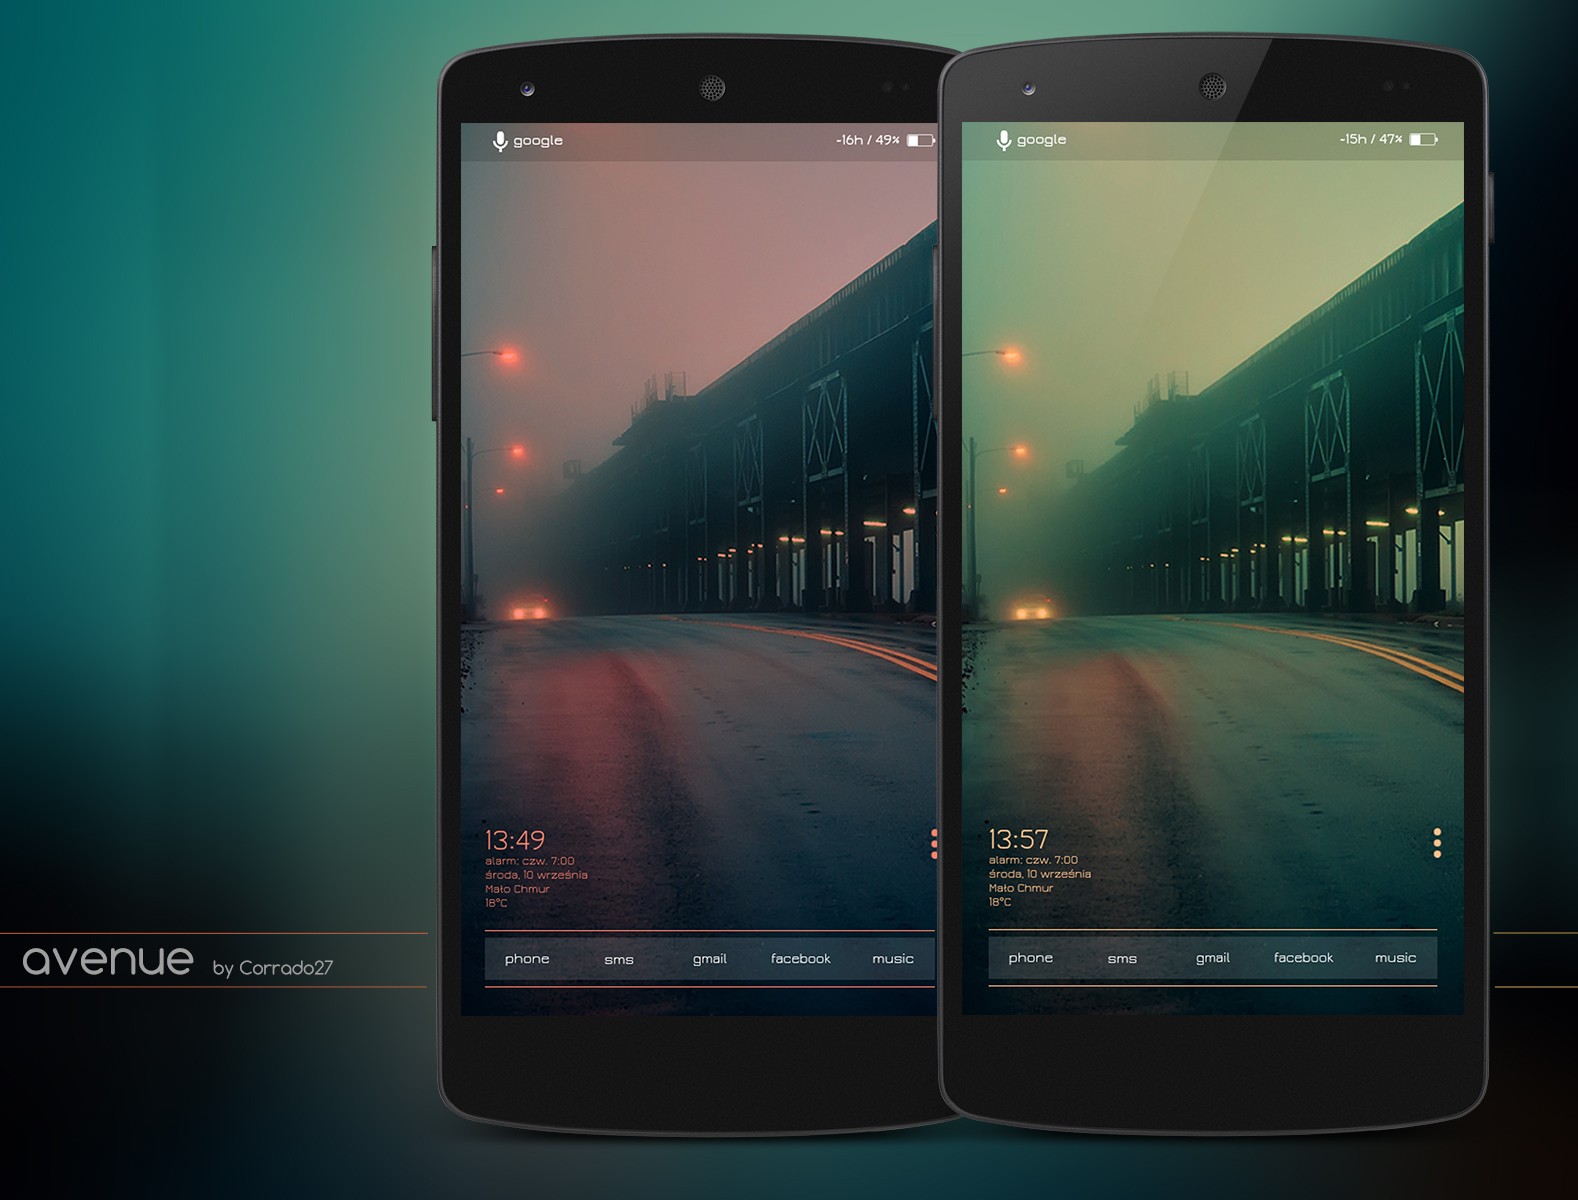 Top Android Homescreen September 12th Edition: Avenue ...